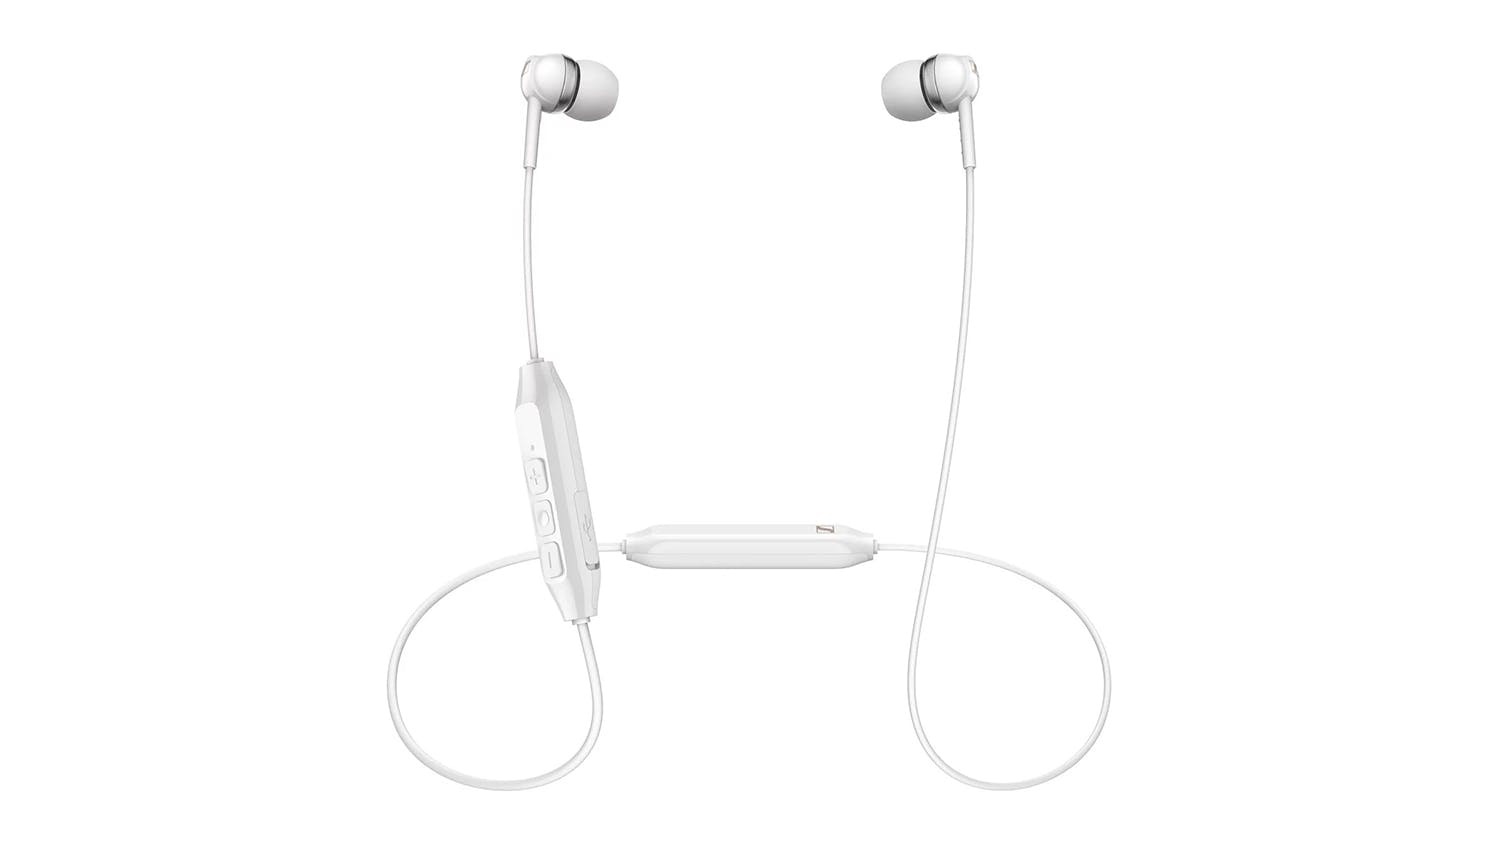 Sennheiser CX150 Wireless Bluetooth In-Ear Headphones - White